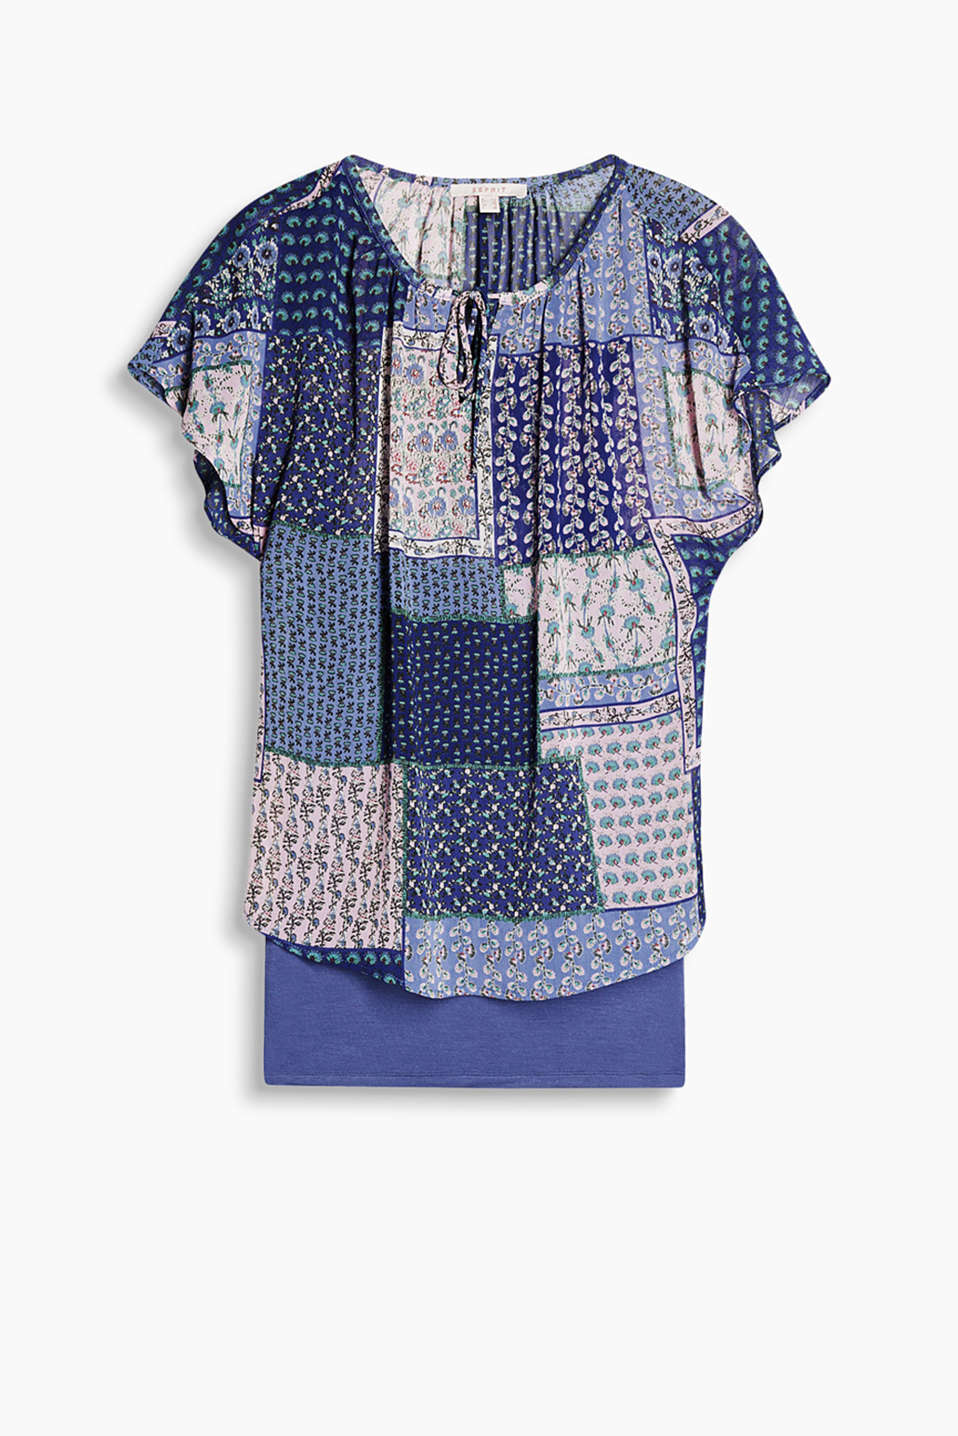 Sheer chiffon blouse with a patchwork print and integrated spaghetti strap top, which can also be worn separately